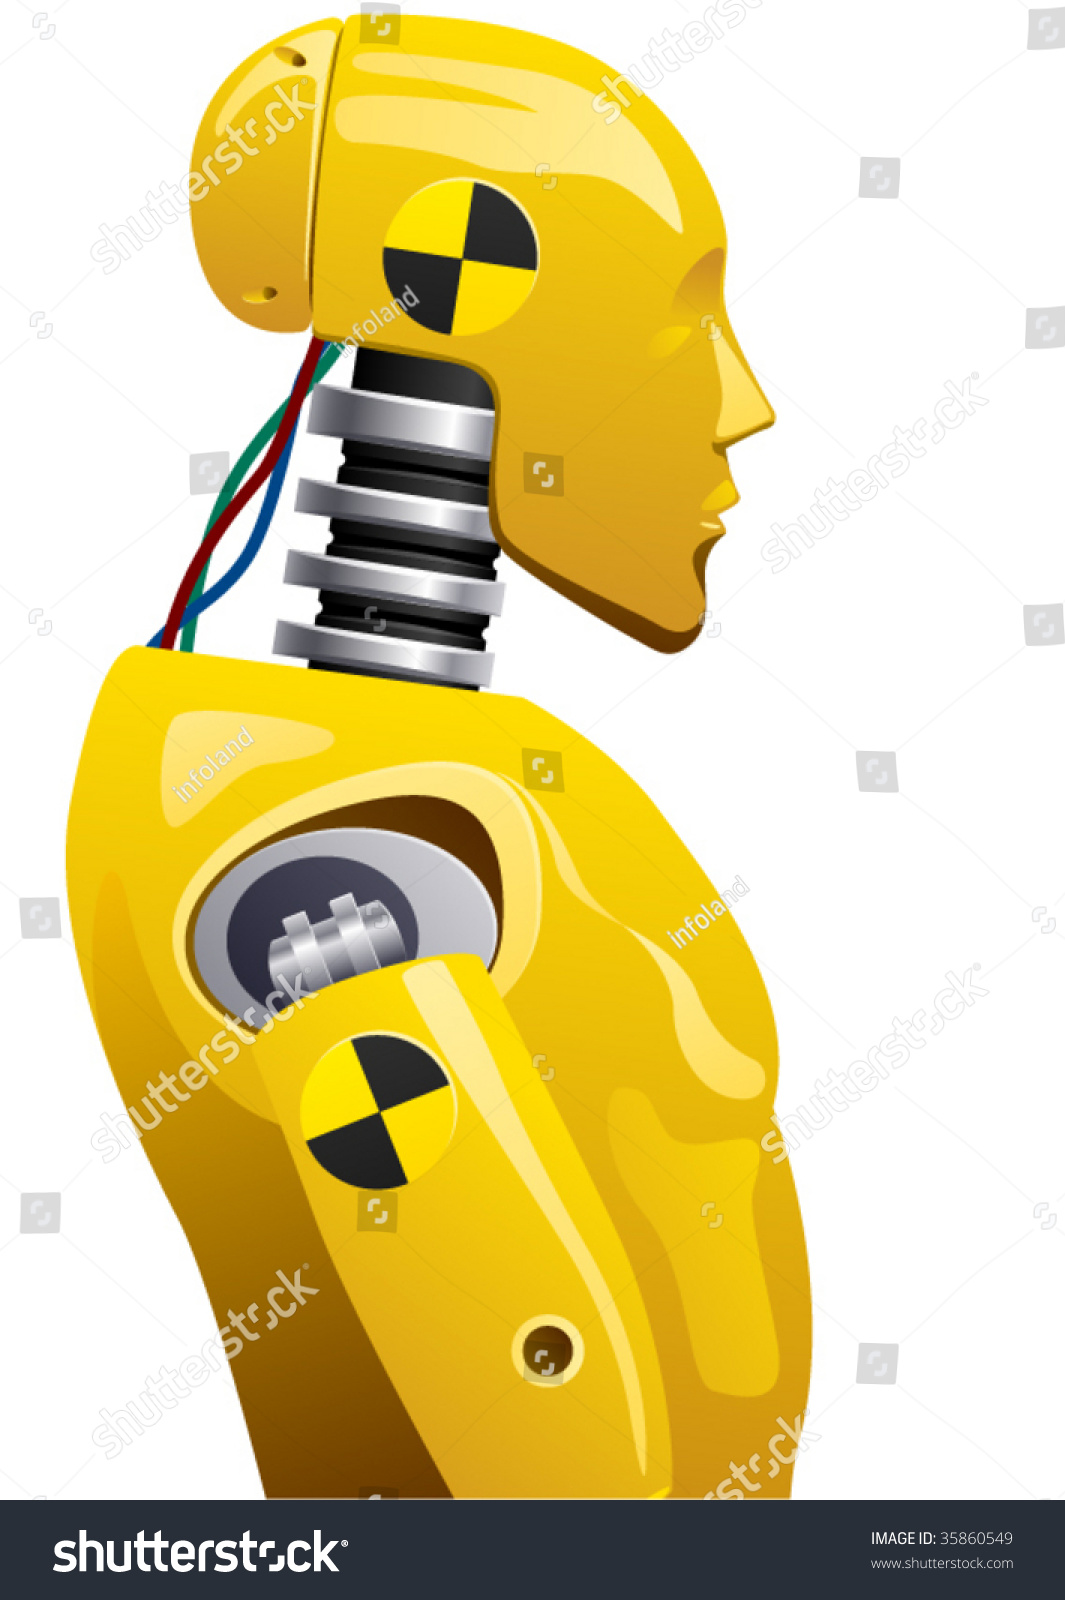 vector crashtest dummy stock vector 35860549 shutterstock